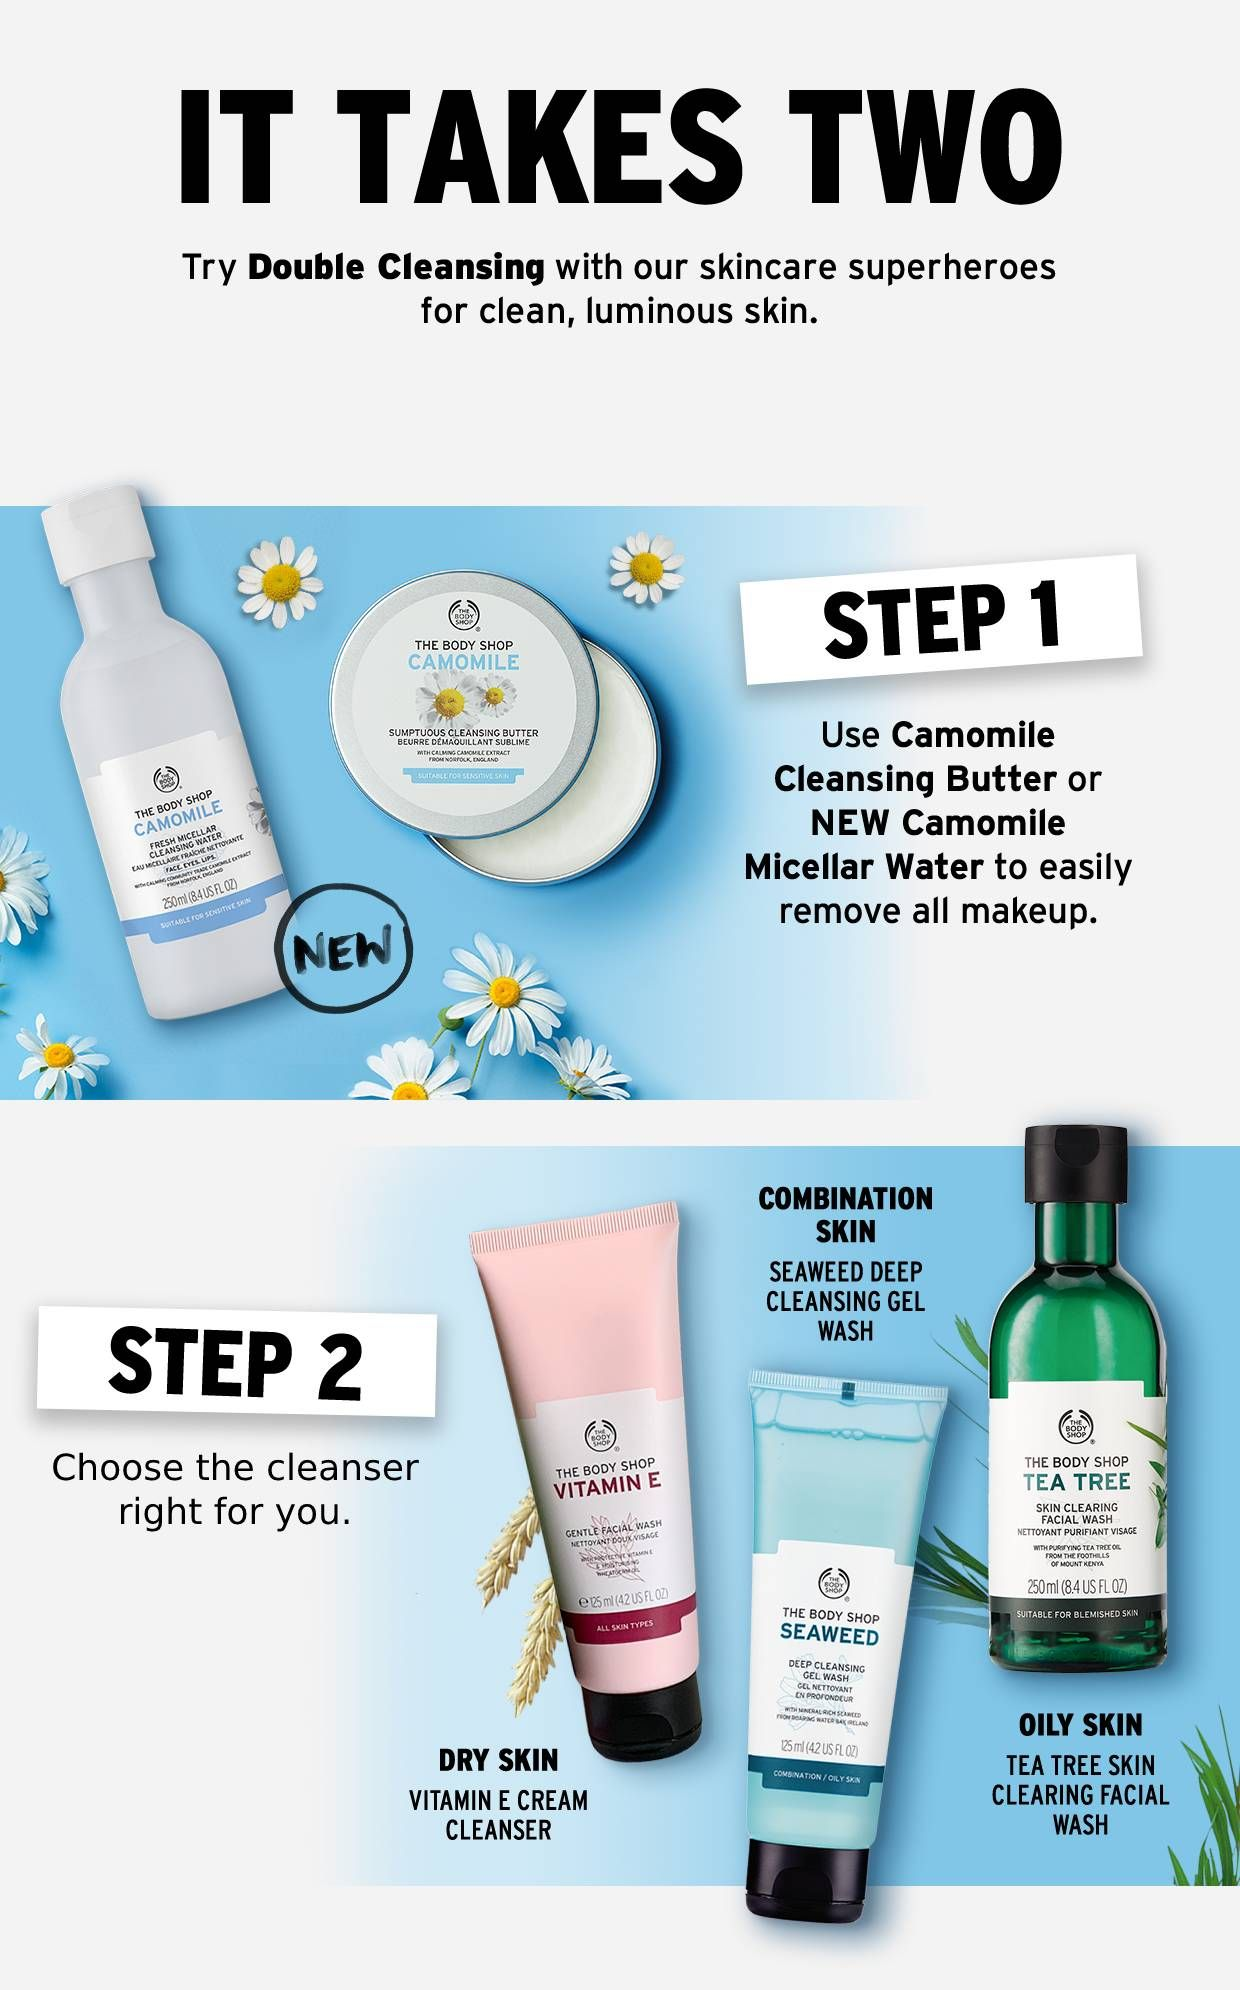 Double cleansing is essential for your daily skincare